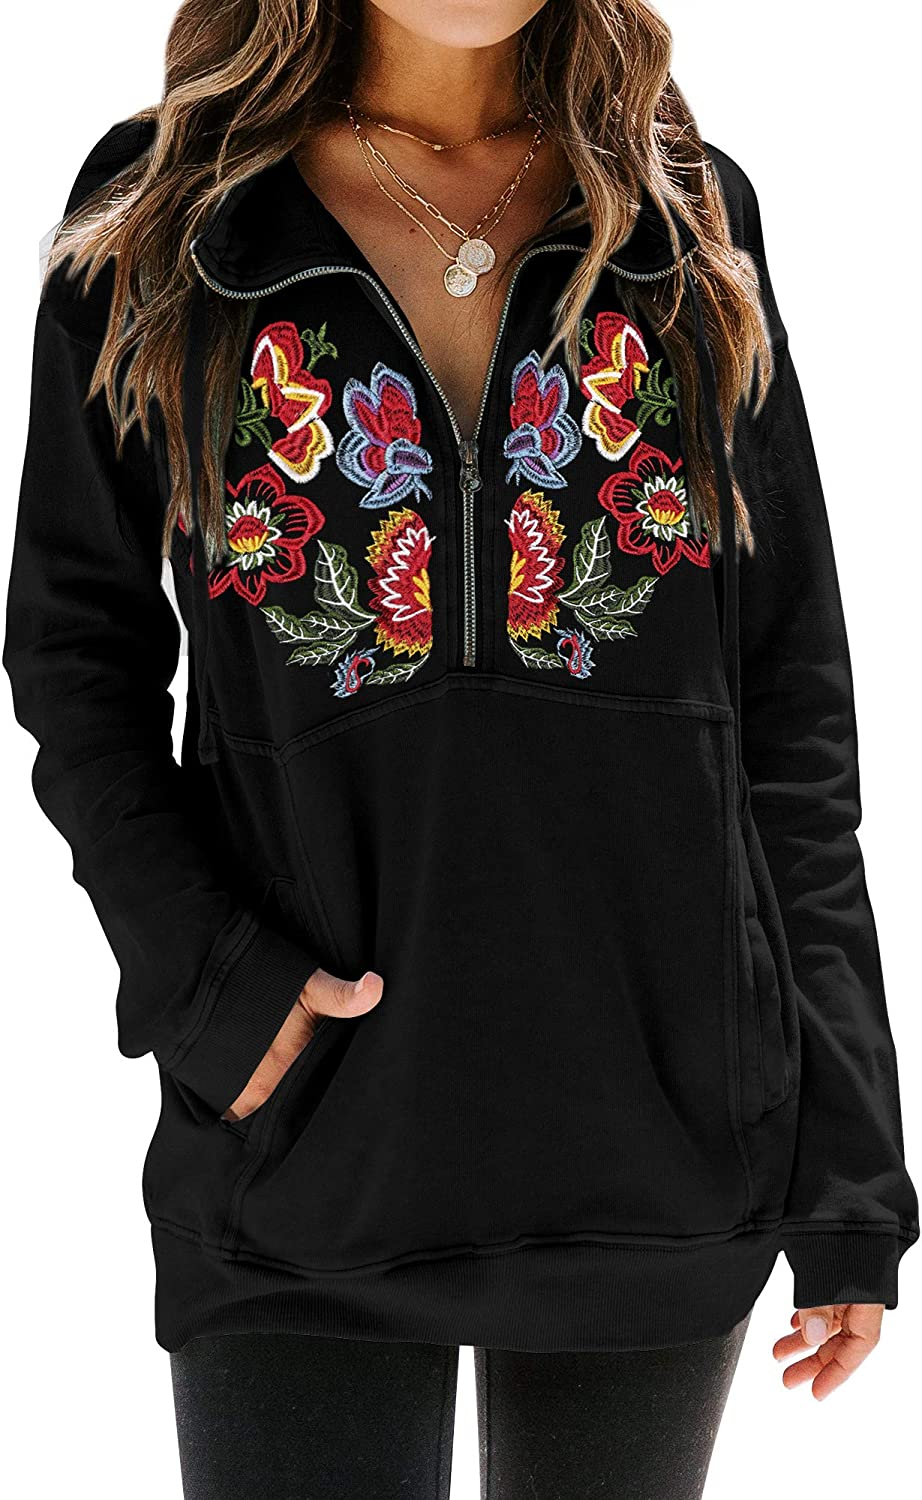 MYMORE Women's Floral Embroidery Shirt Drawstring Half Zip Up Long Sleeve Pullover Sweatshirt Top with Pockets at  Women's Clothing store